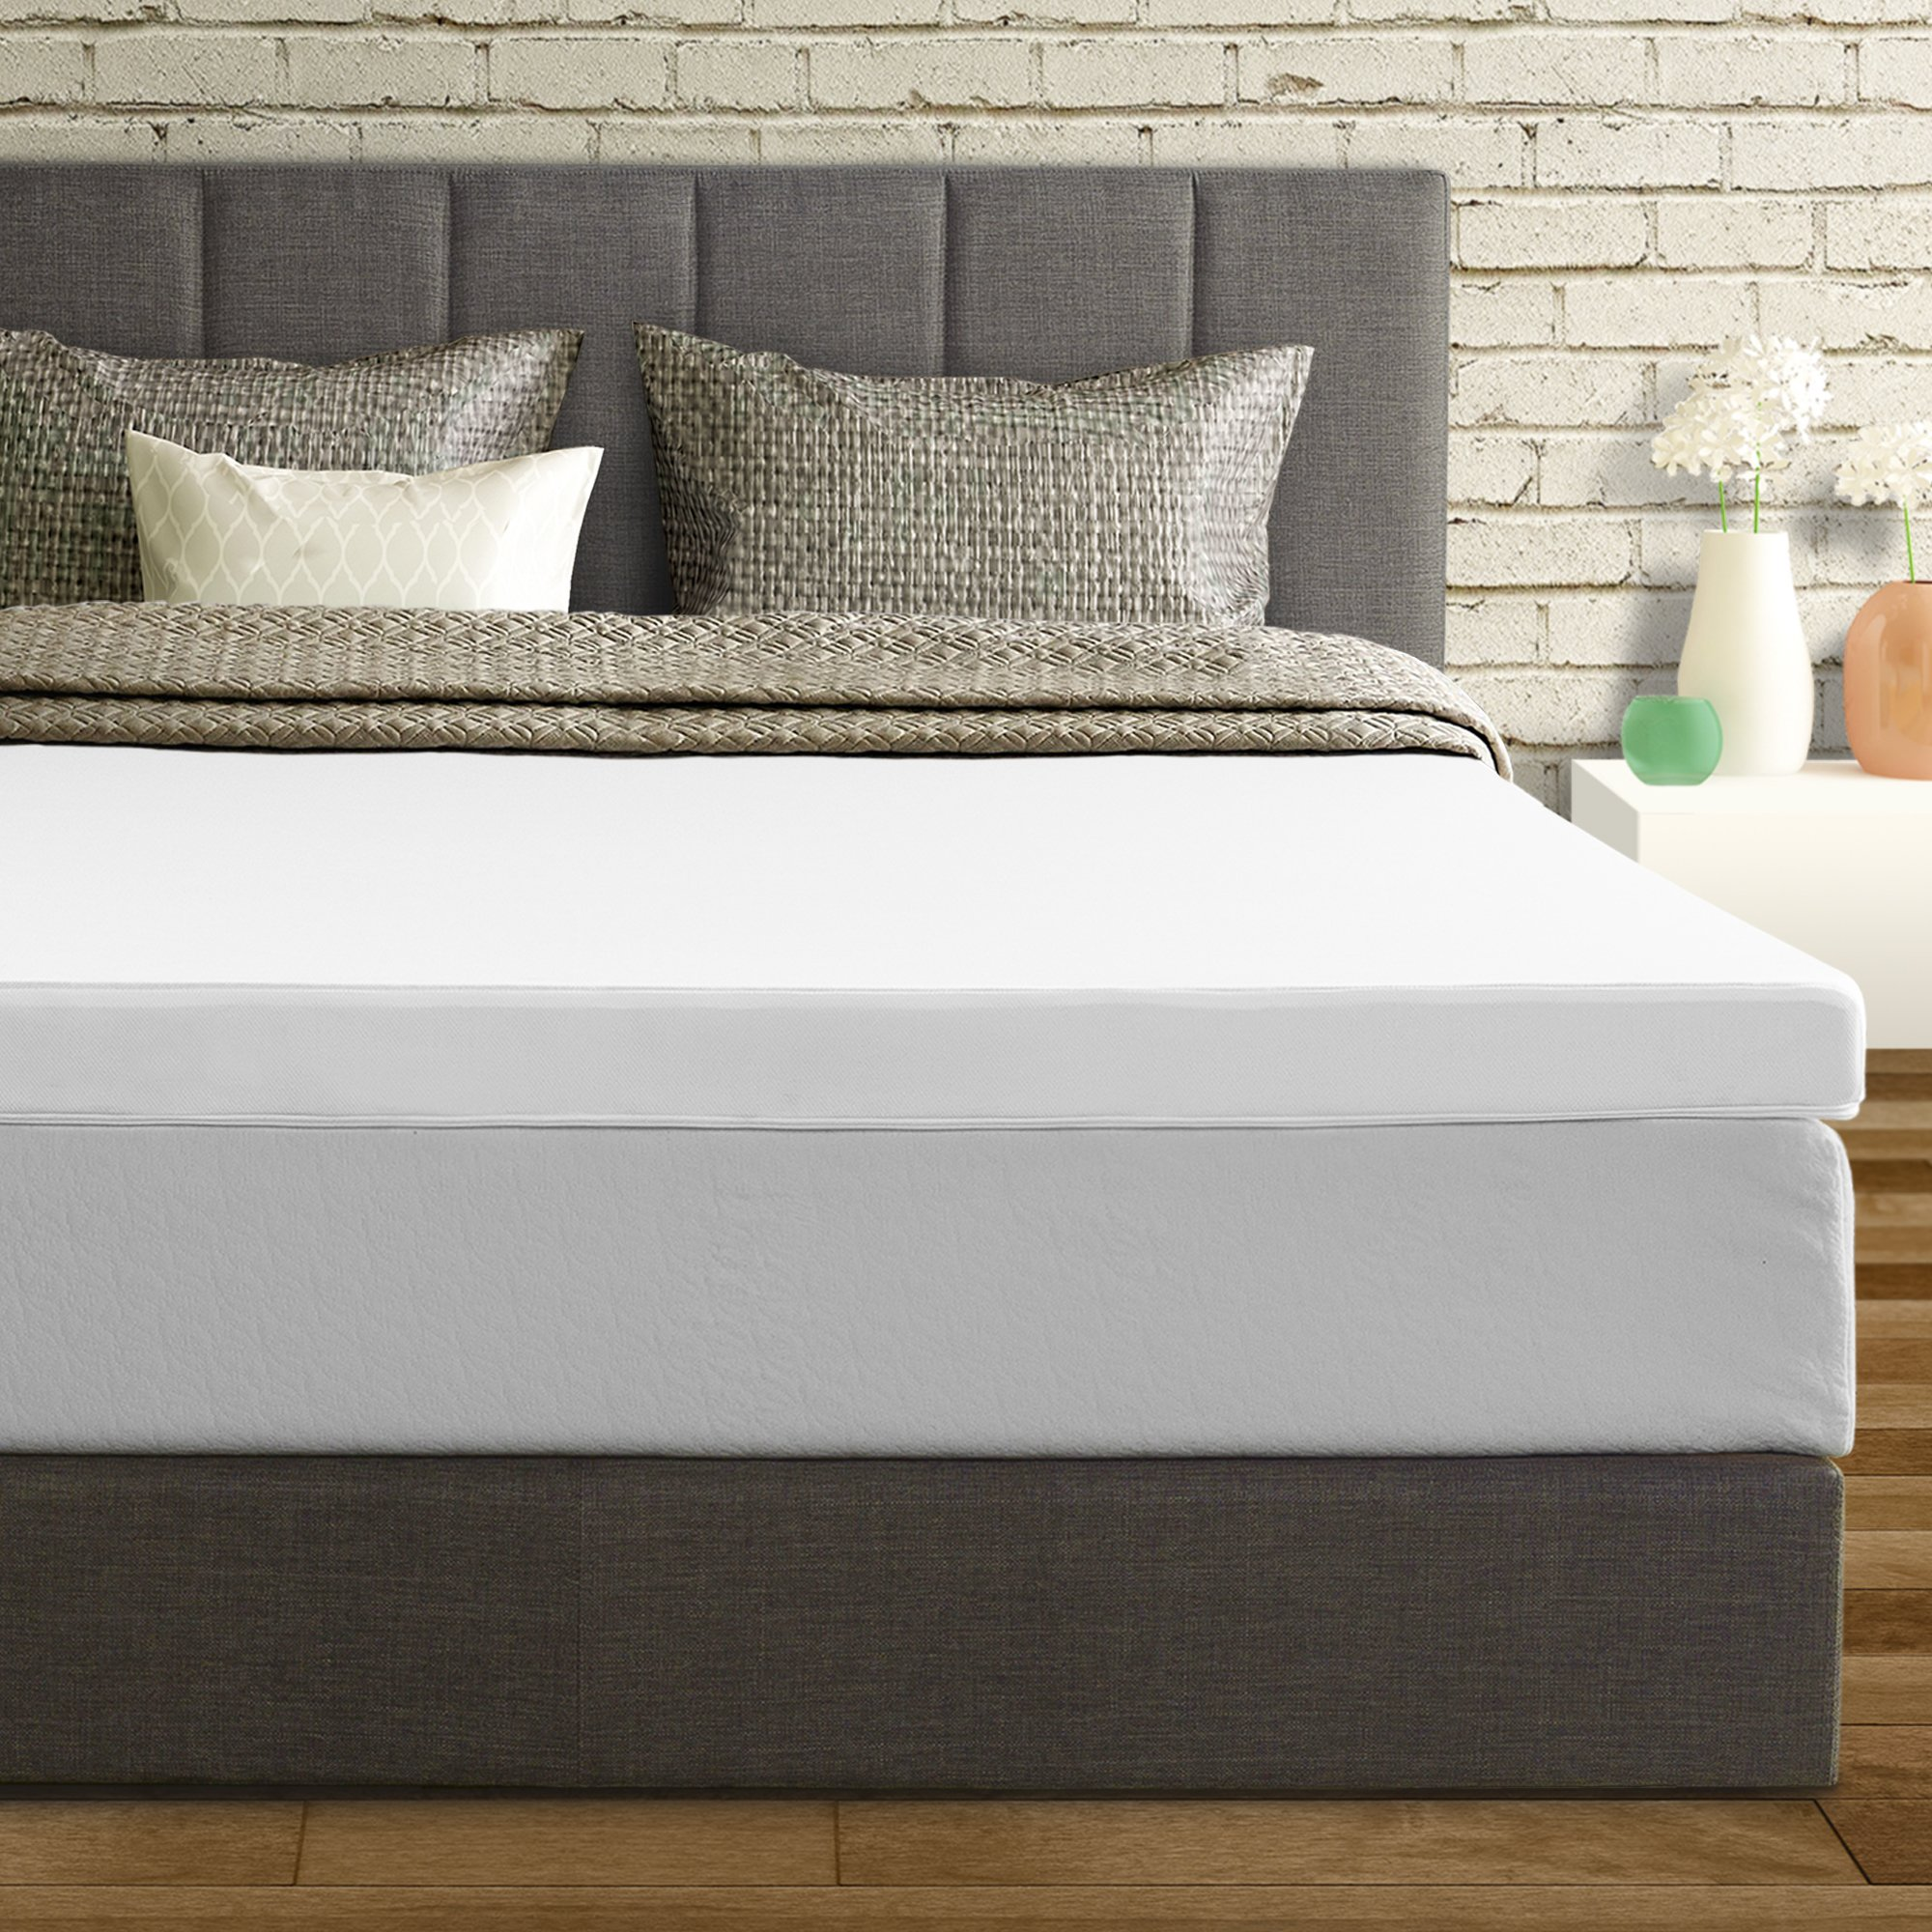 Mattress Topper Short Queen Size 3 Inch Memory Foam Bed Cover